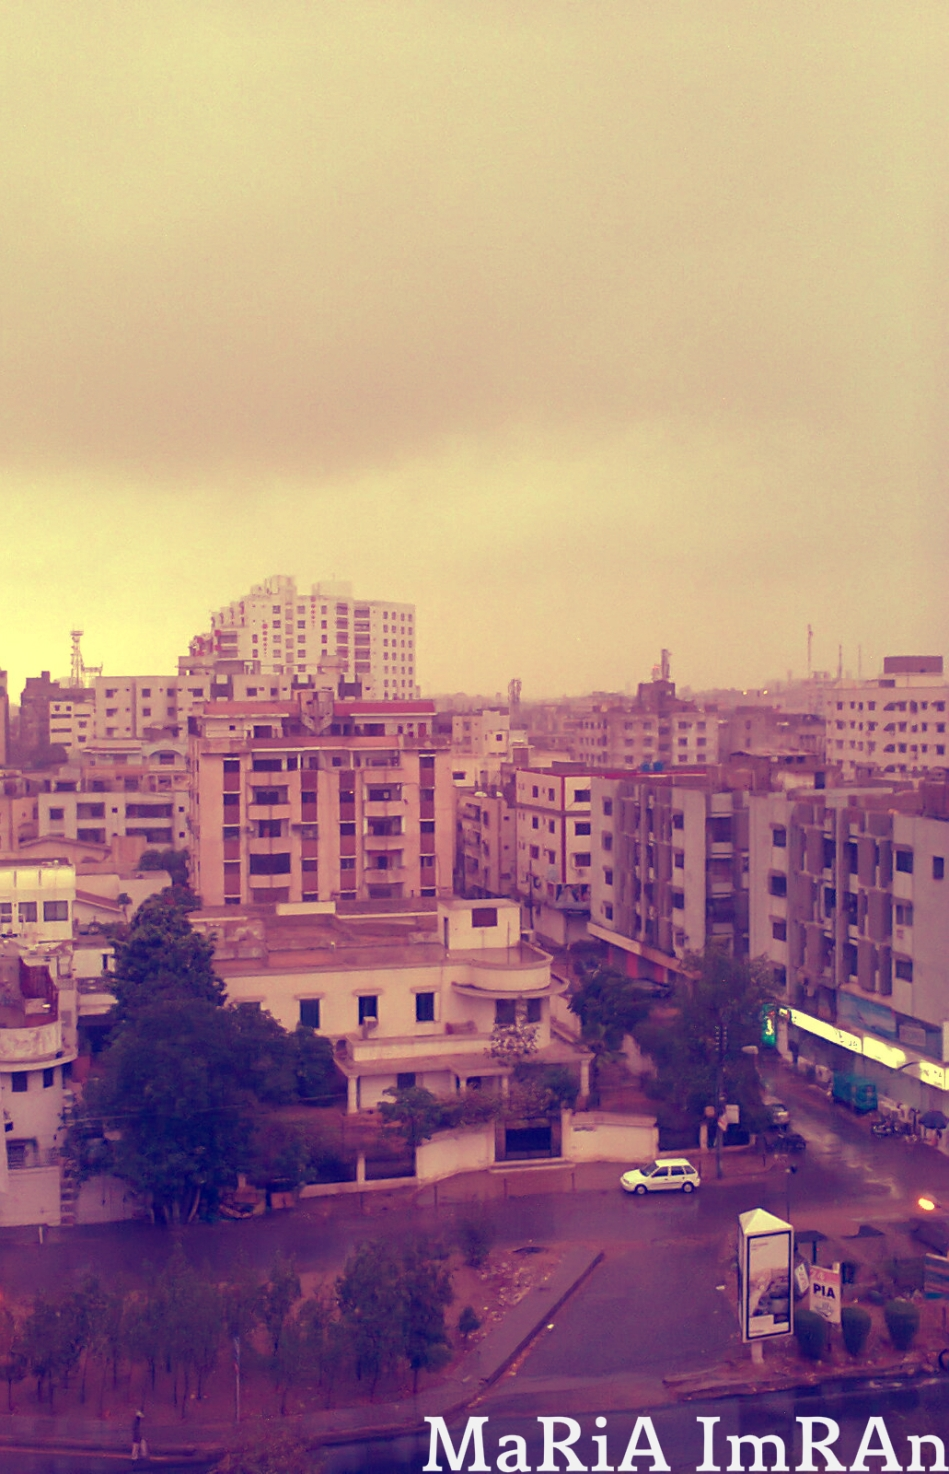 It is going to rain..